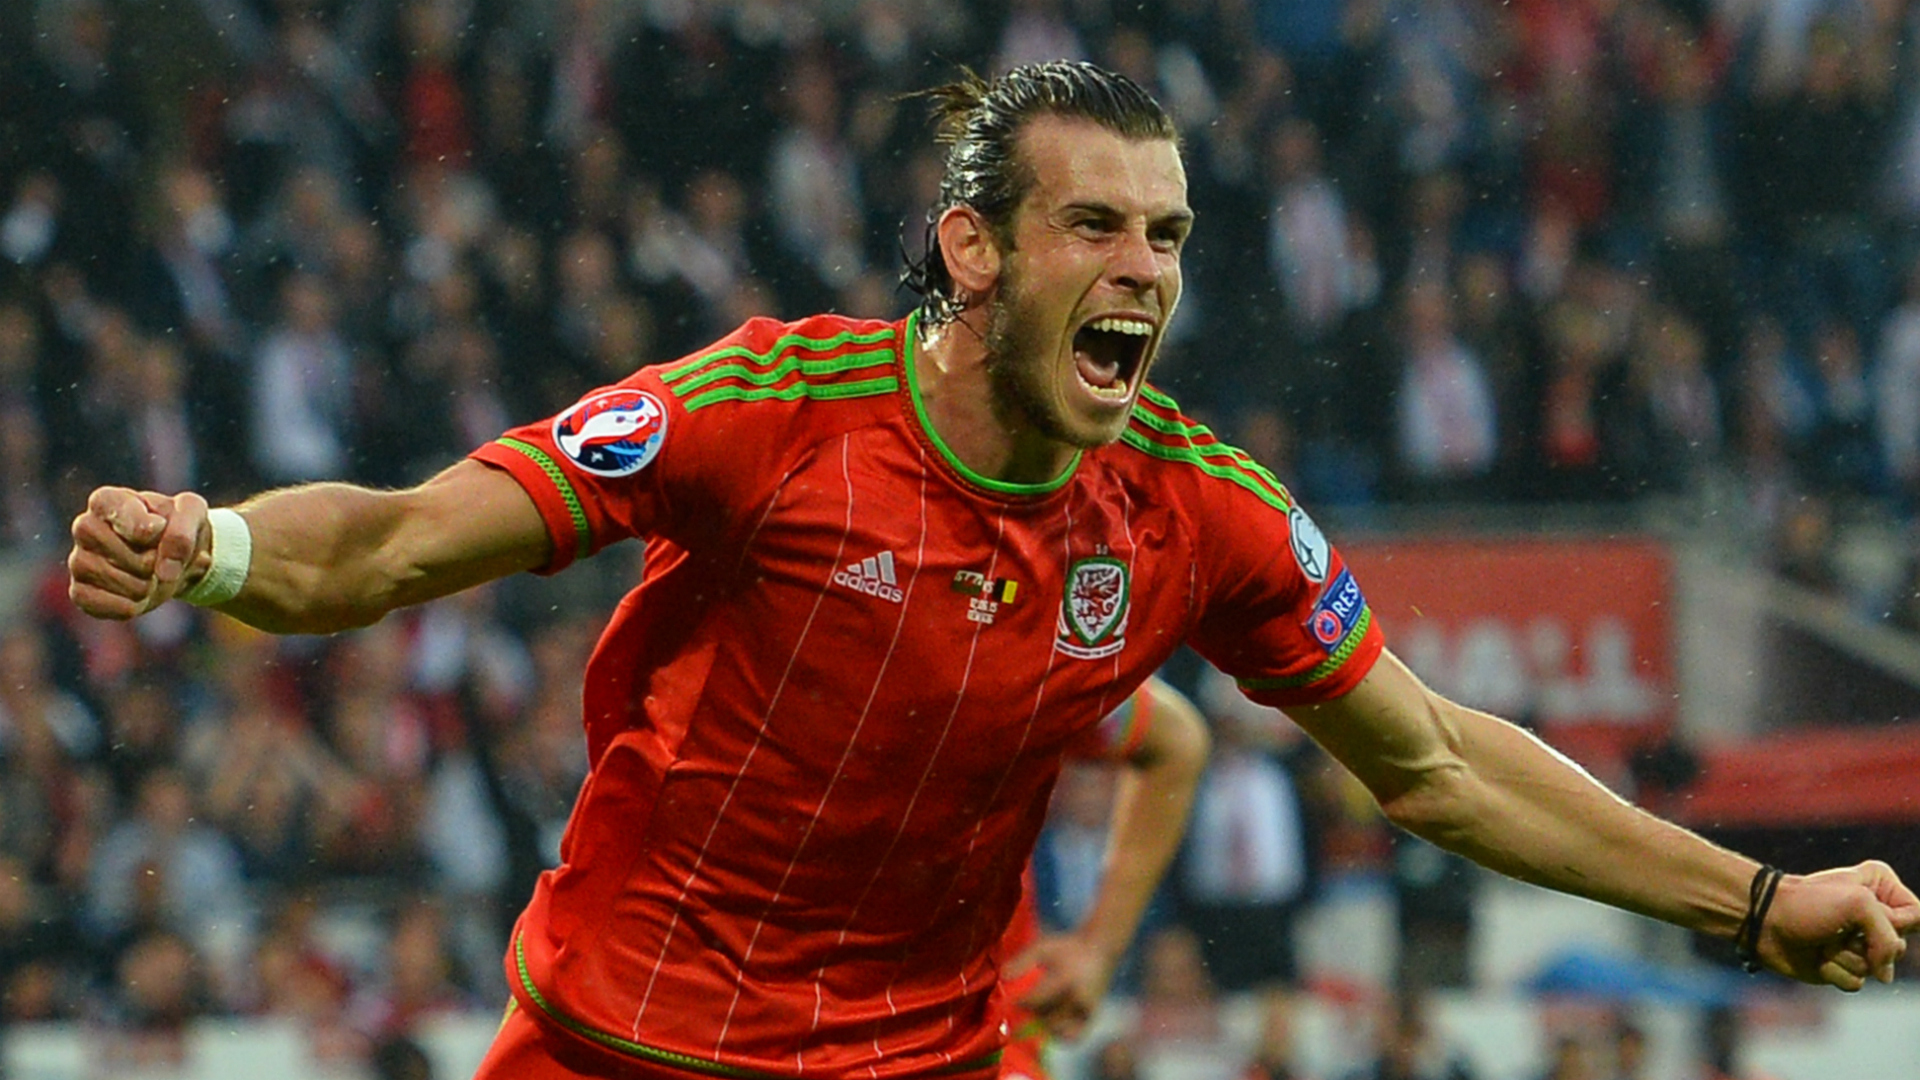 Bale and Wales made an unexpected journey to the Semi-Finals.